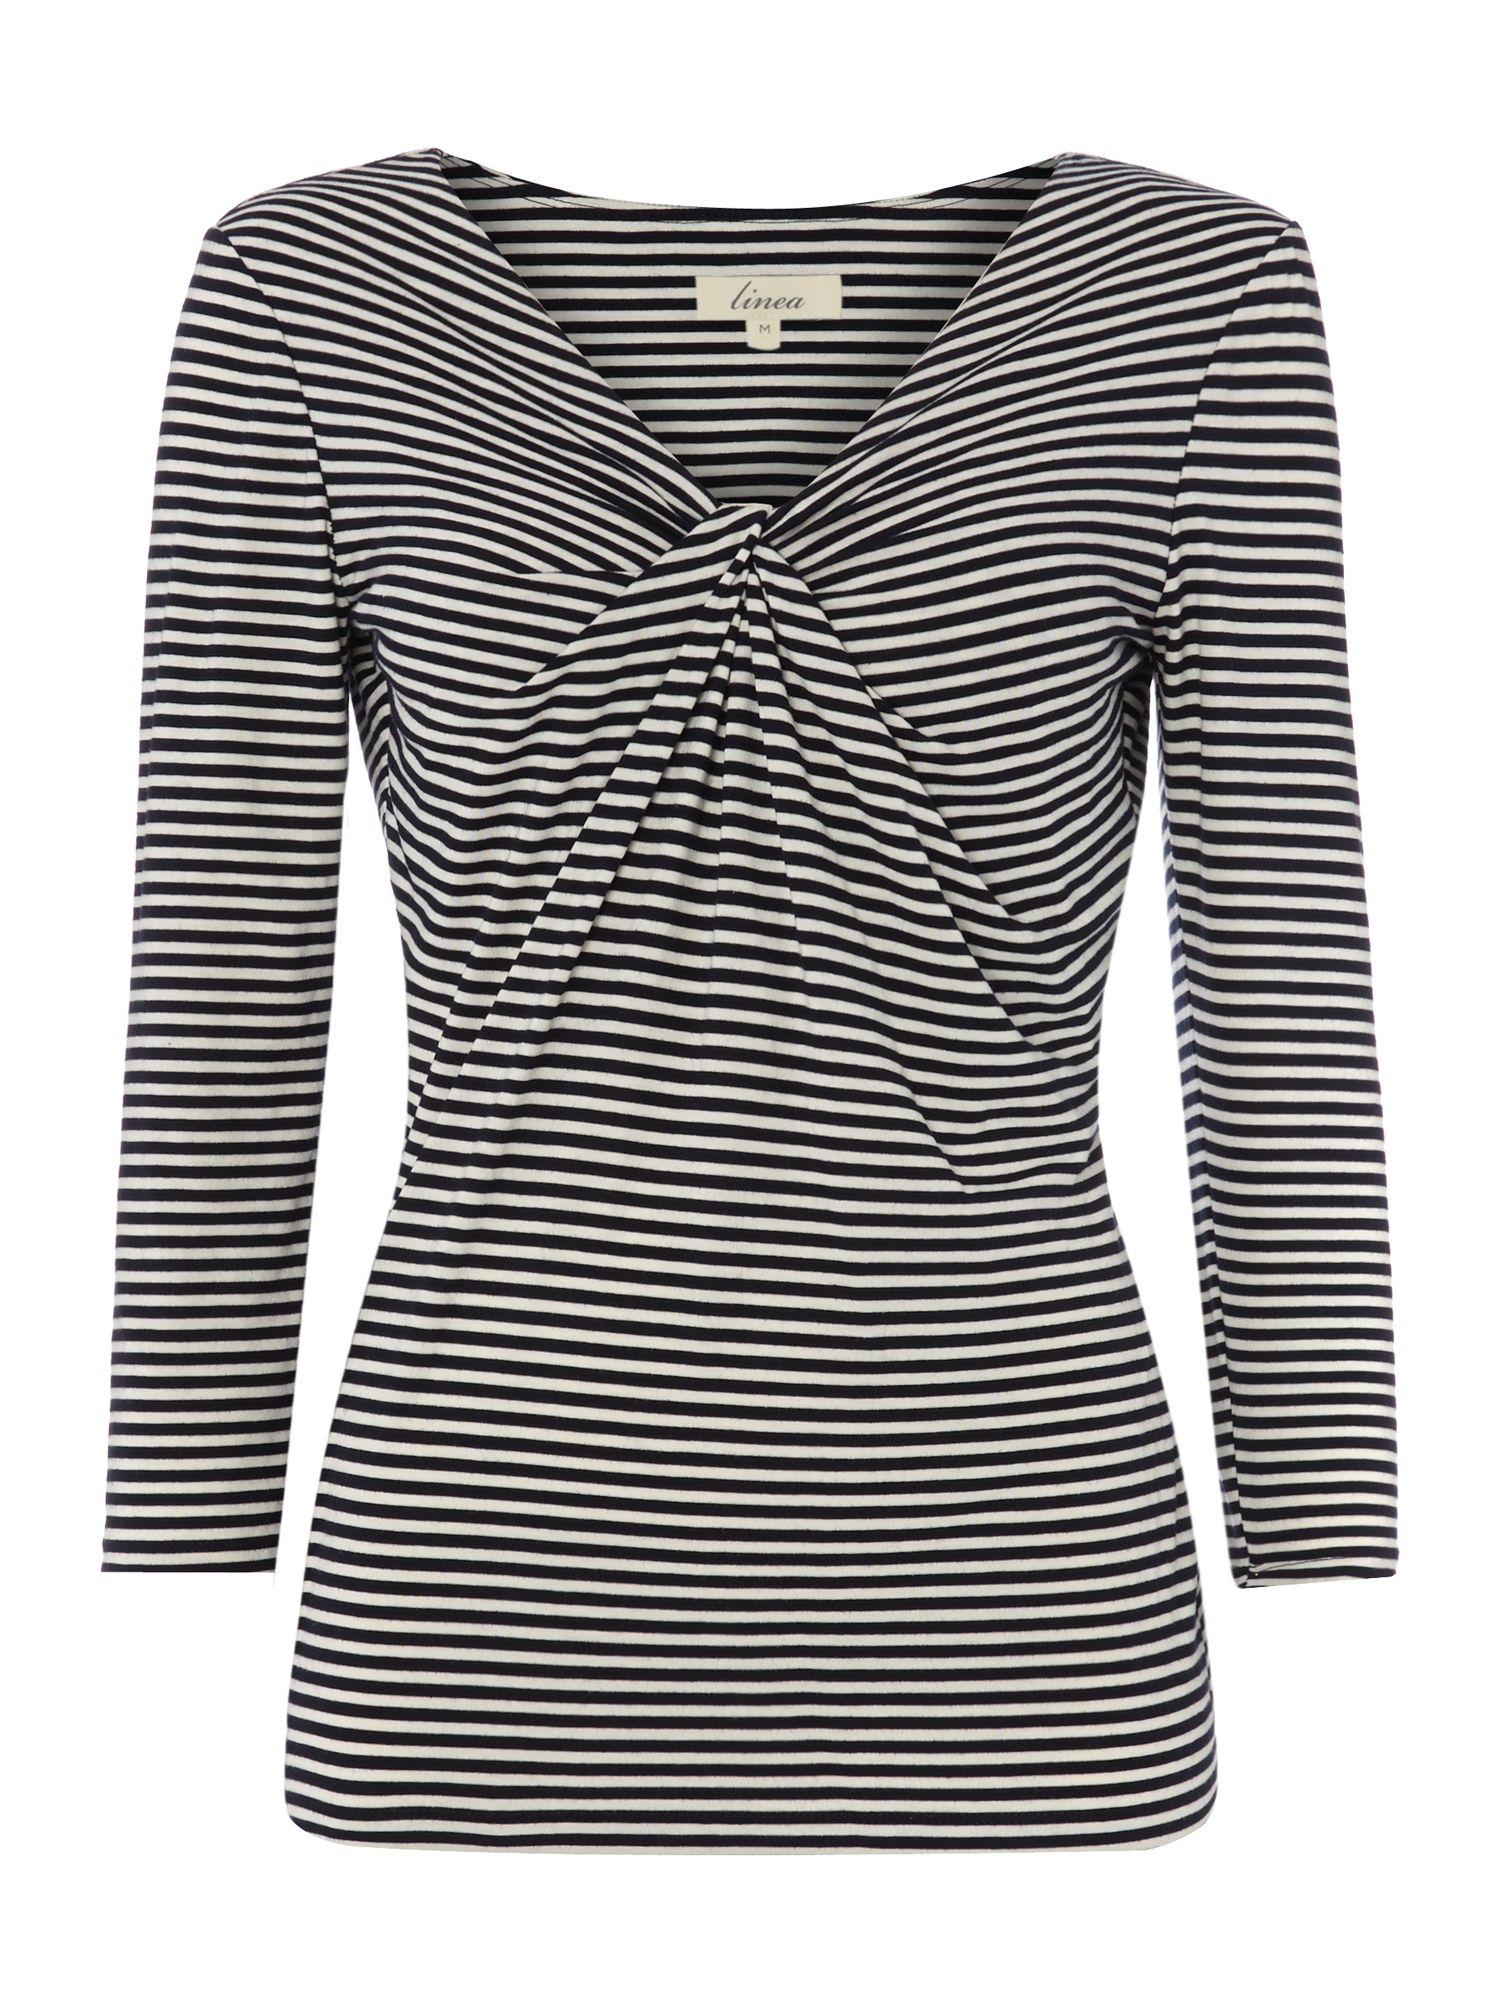 Stripe knot 3/4 sleeve top